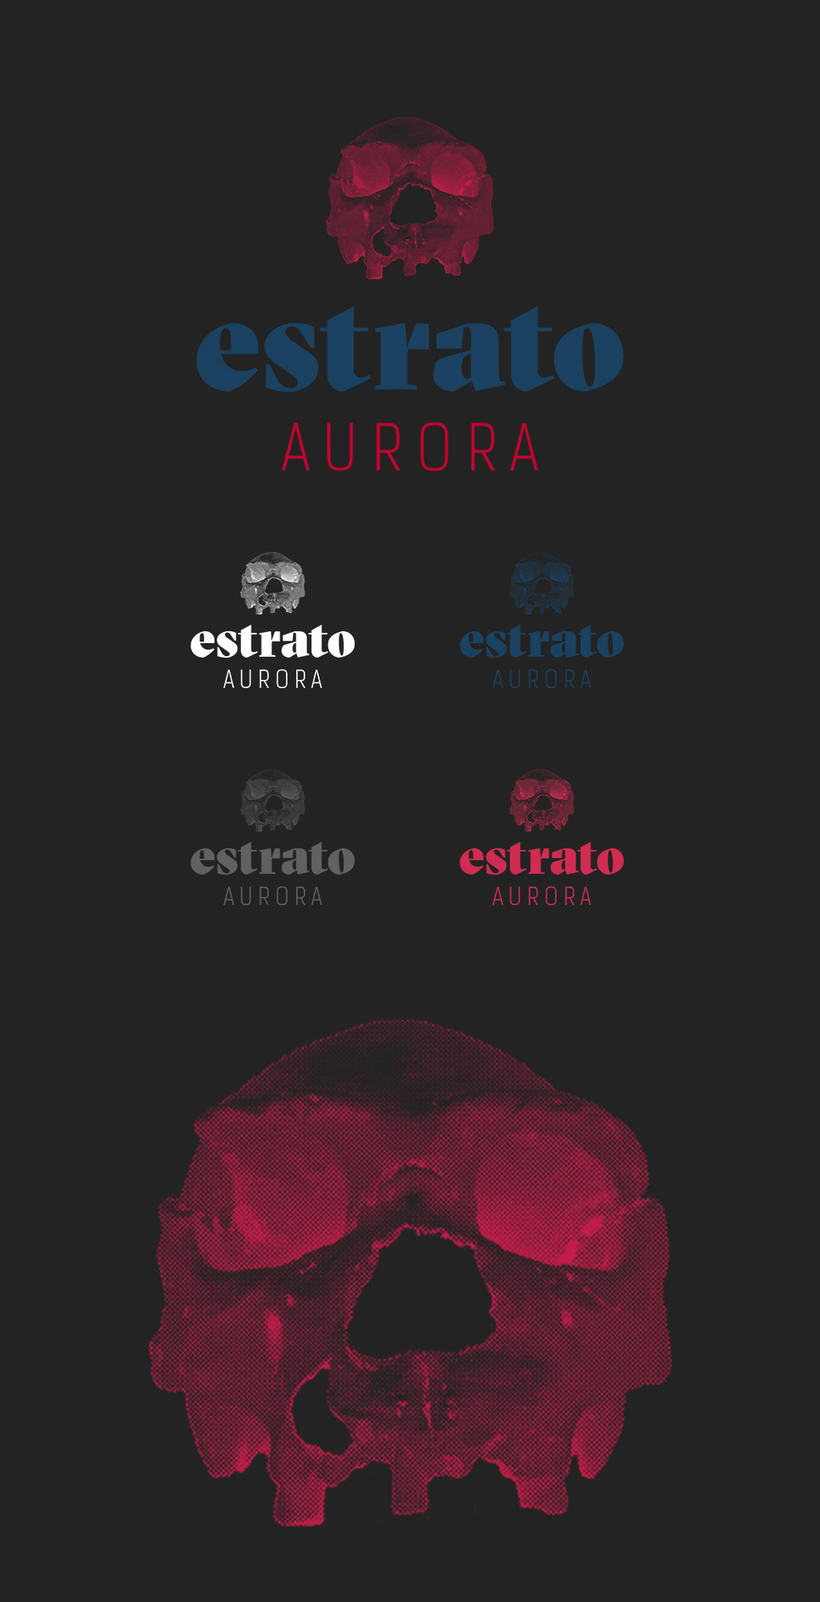 Logotipo Estrato Aurora + video 0